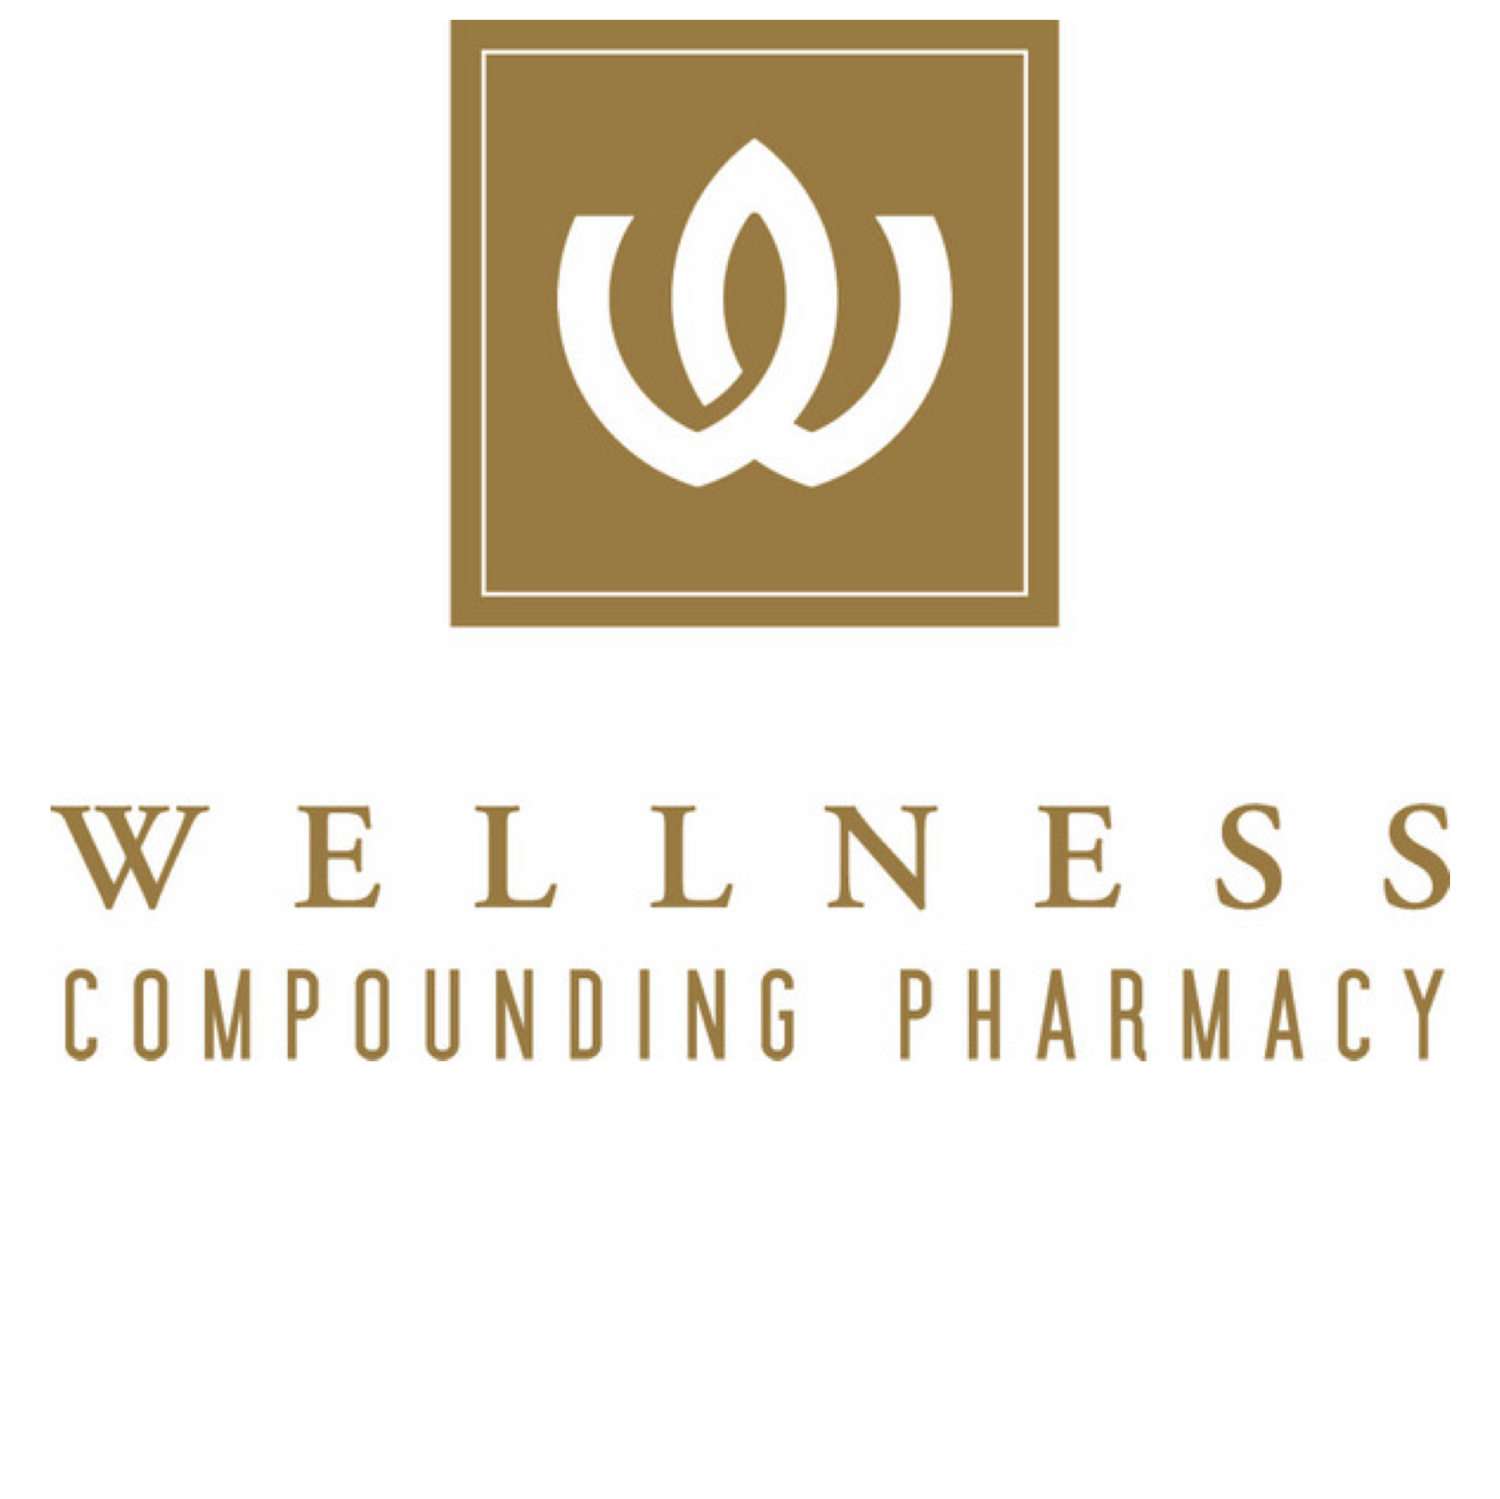 WELLNESS COMPOUNDING PHARMACY OF CARY